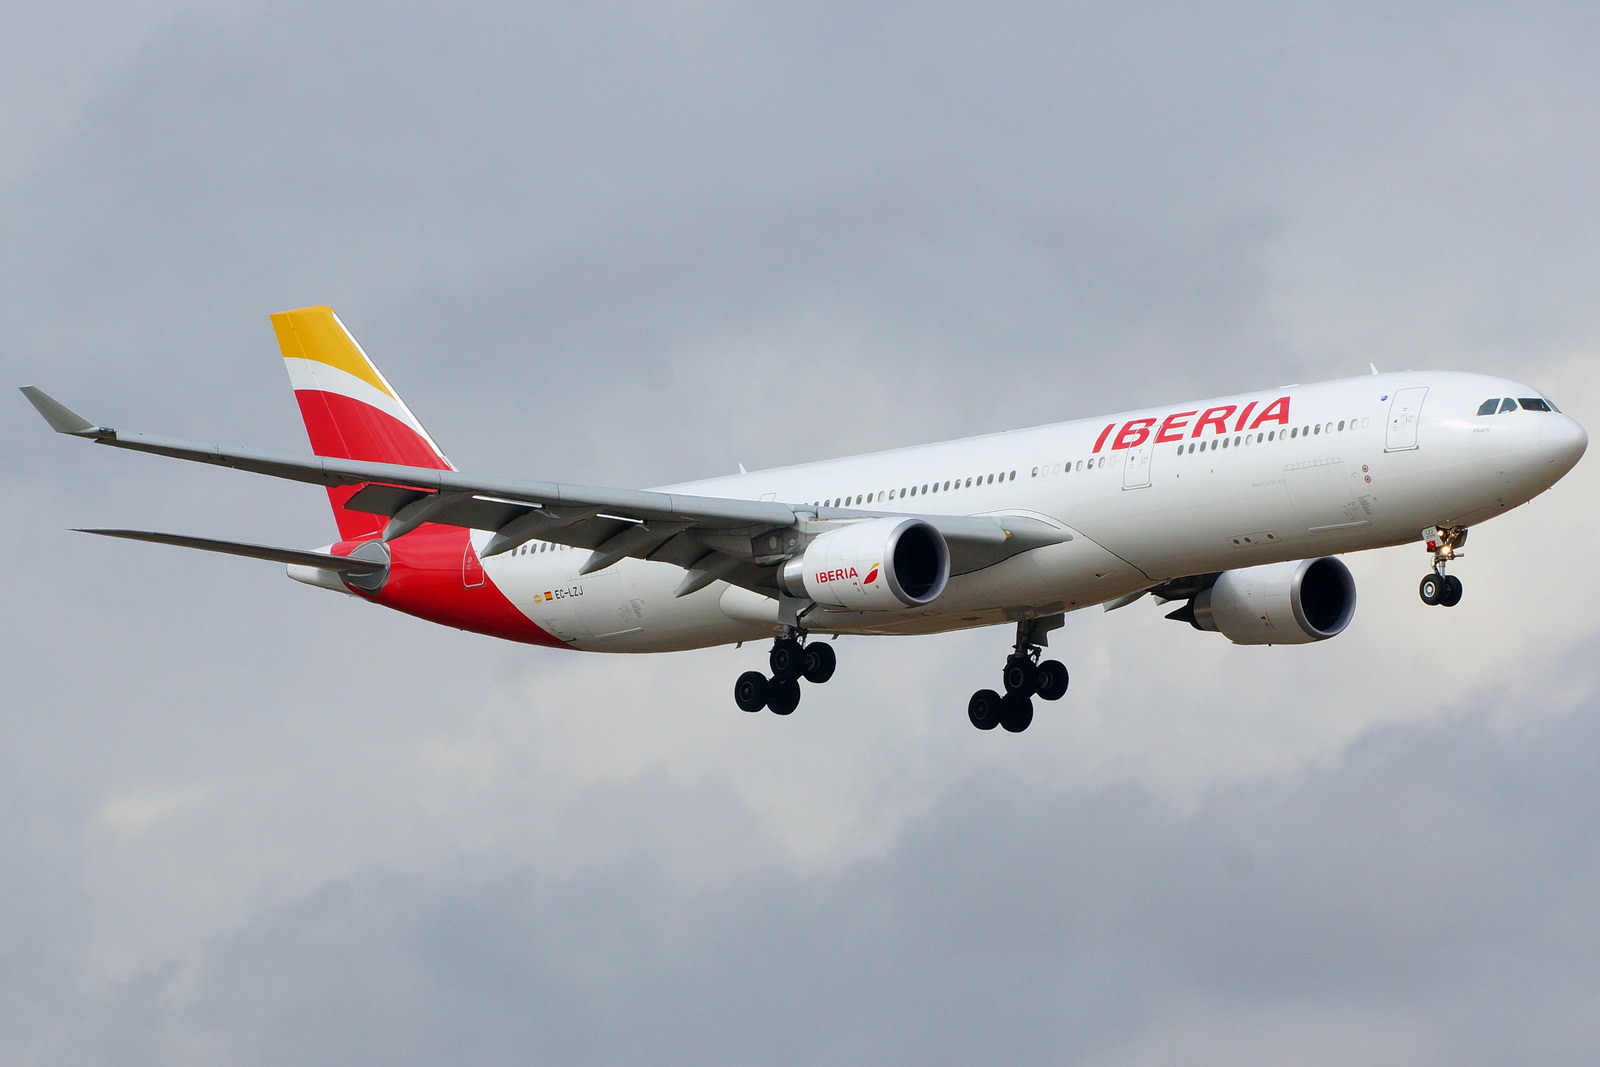 finnair extends the lease of an airbus 330 from iberia for its miami route airbus 330 from iberia for its miami route